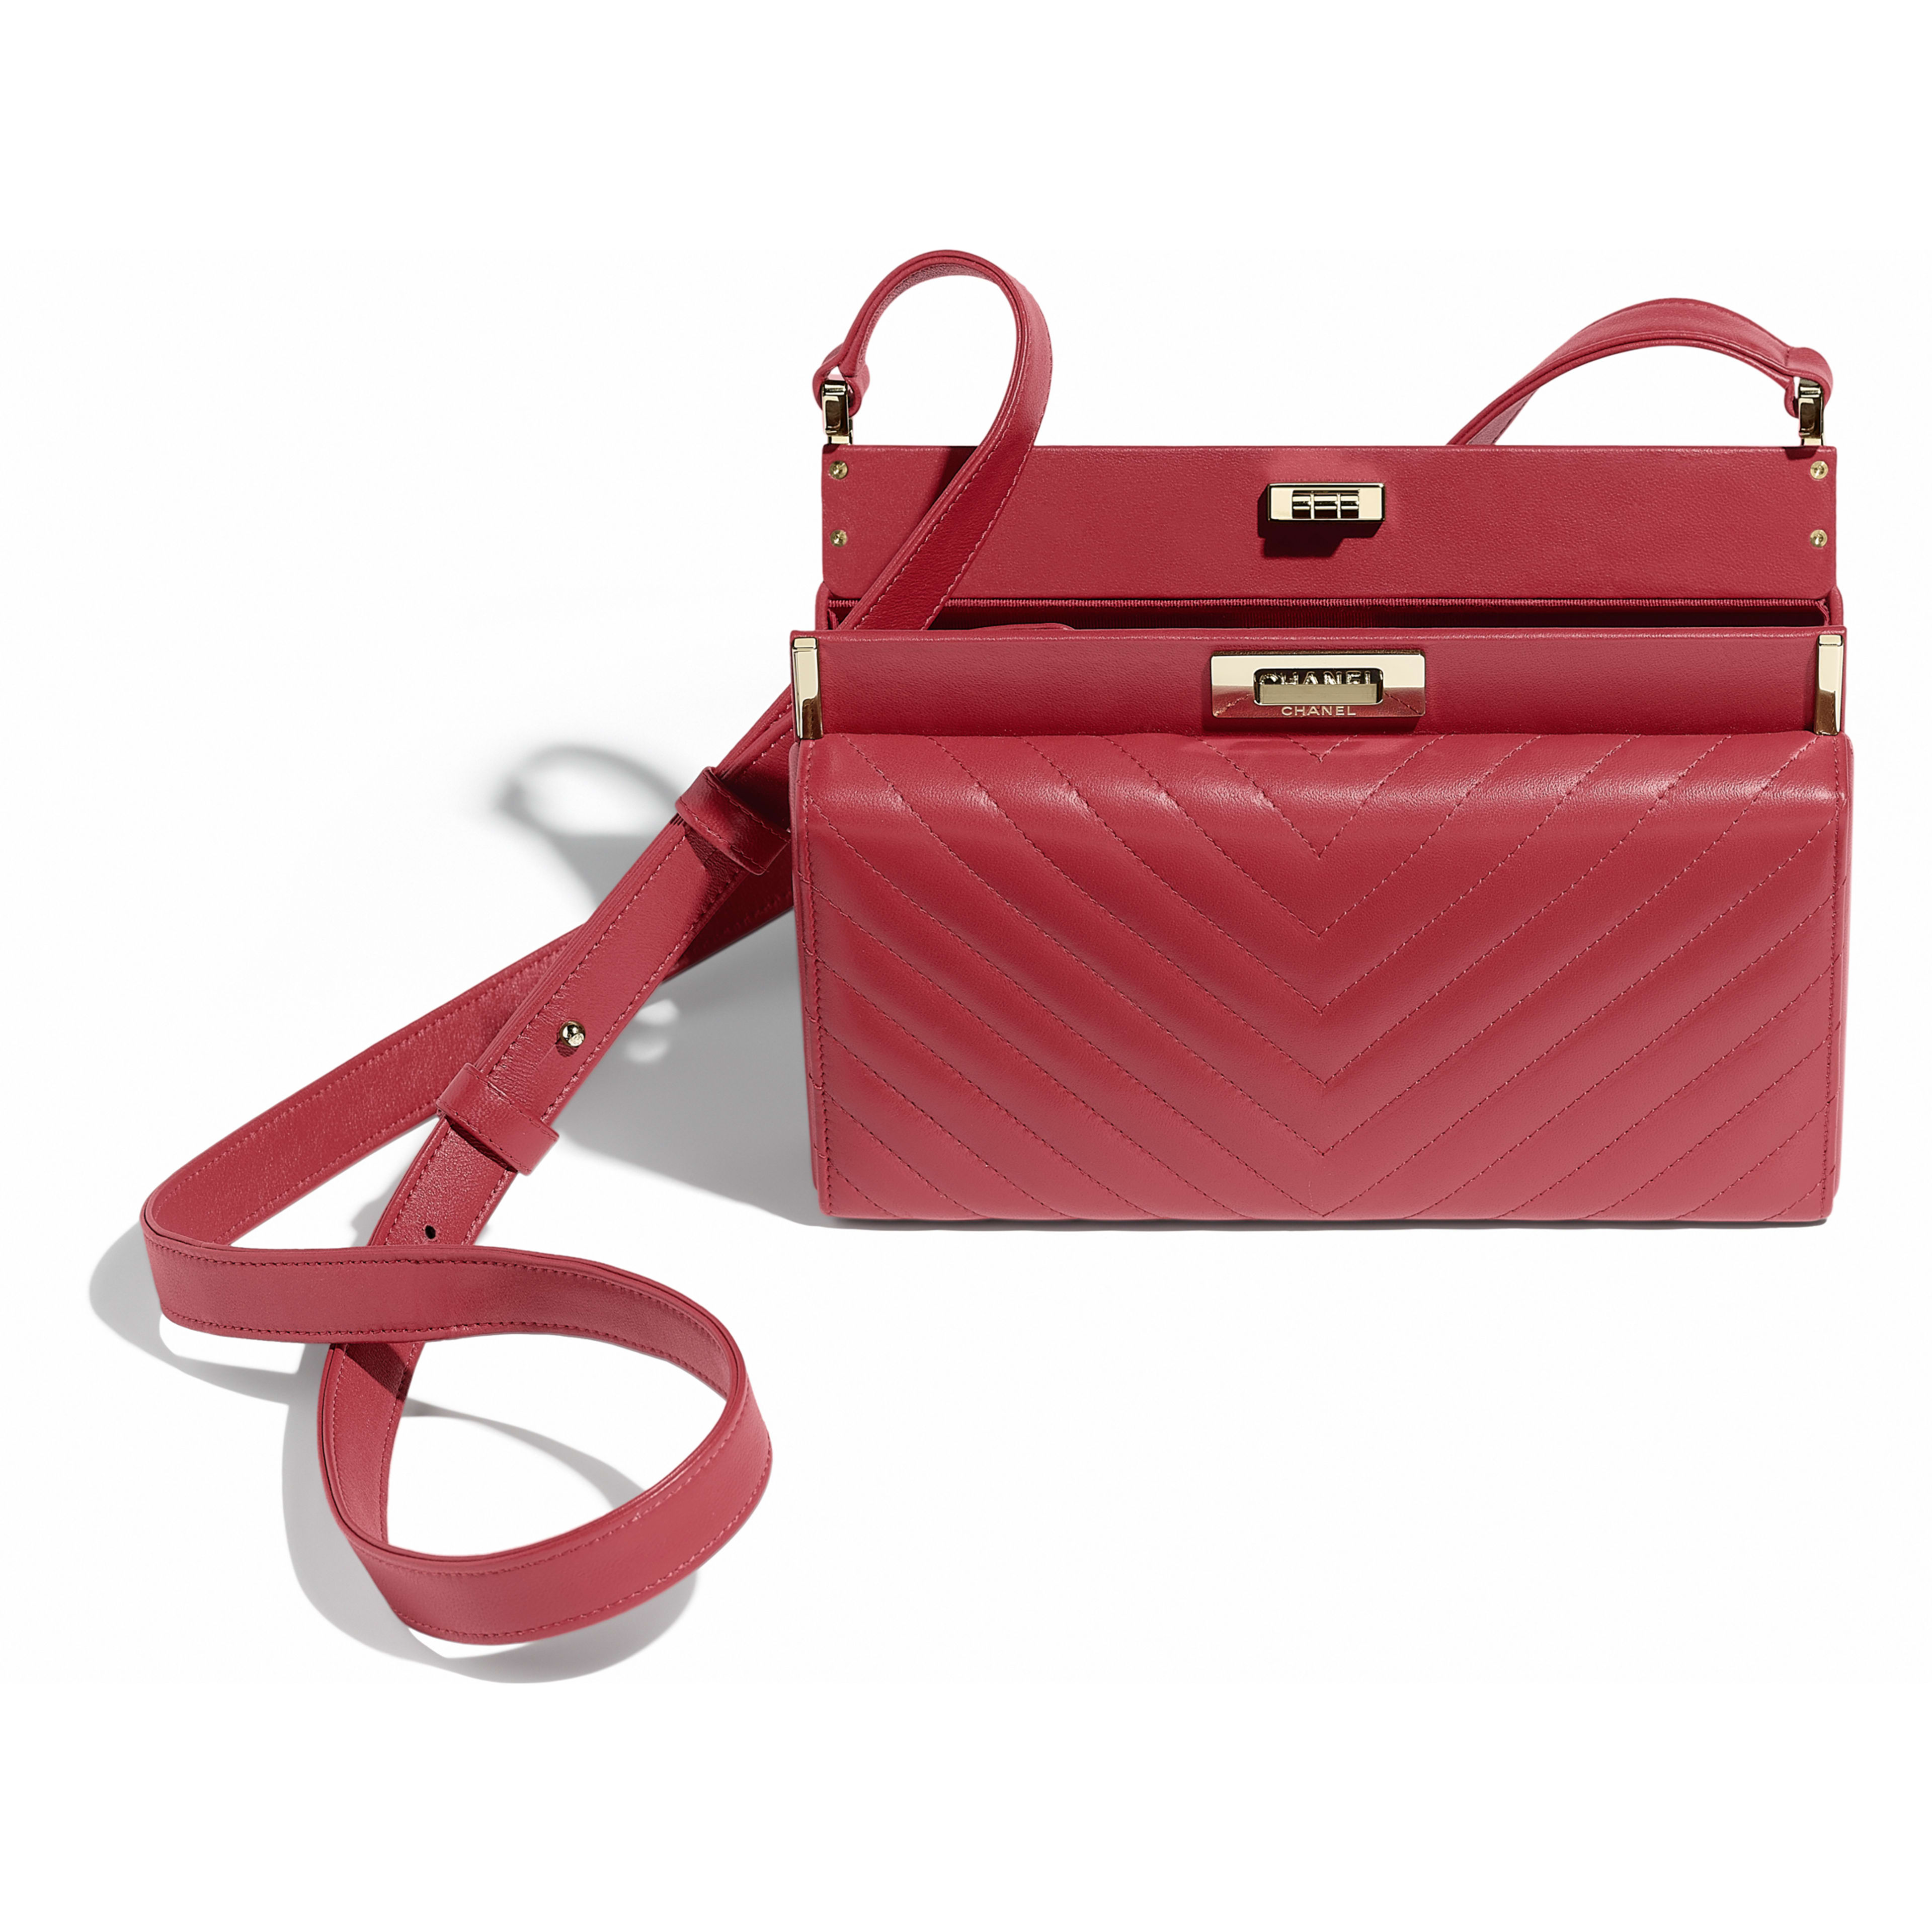 Clutch - Red - Lambskin & Gold-Tone Metal - Other view - see full sized version